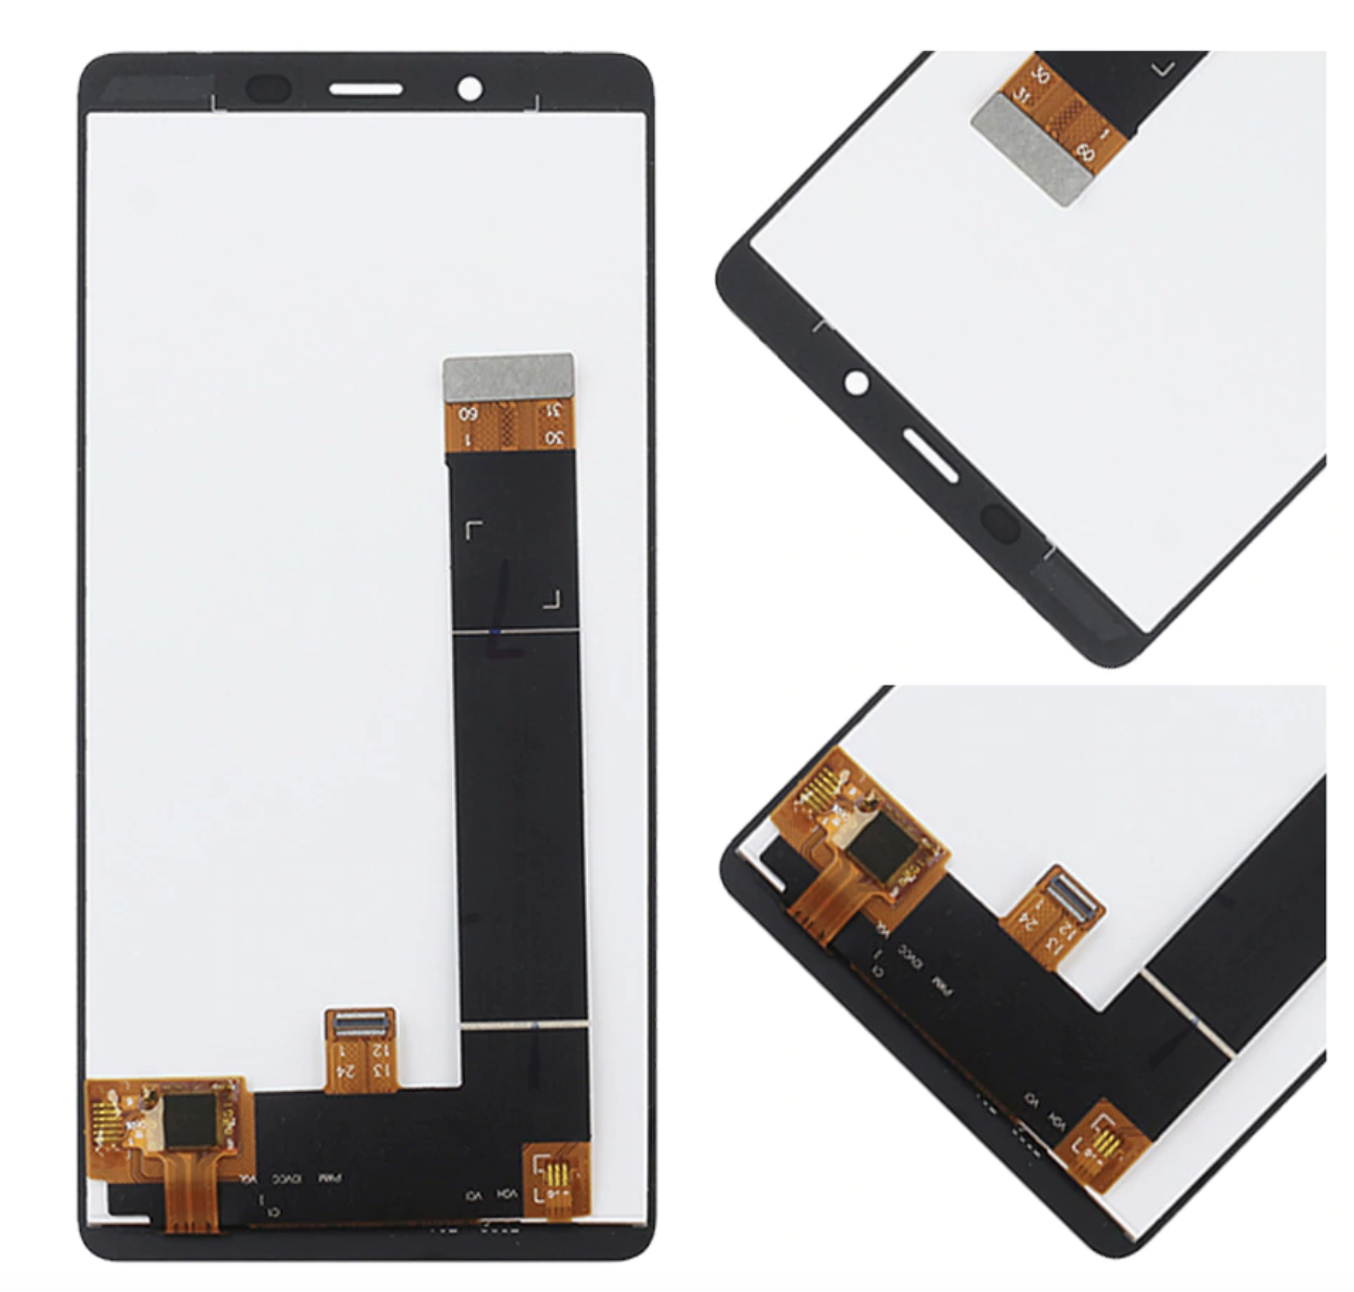 AAA+ Quality LCD Display Digitizer Touch for <font><b>Nokia</b></font> <font><b>1</b></font> <font><b>Plus</b></font> <font><b>TA</b></font>-<font><b>1130</b></font> <font><b>TA</b></font>-1111 <font><b>TA</b></font>-1123 <font><b>TA</b></font>-1131 LCD Screen Replacement+free tools image